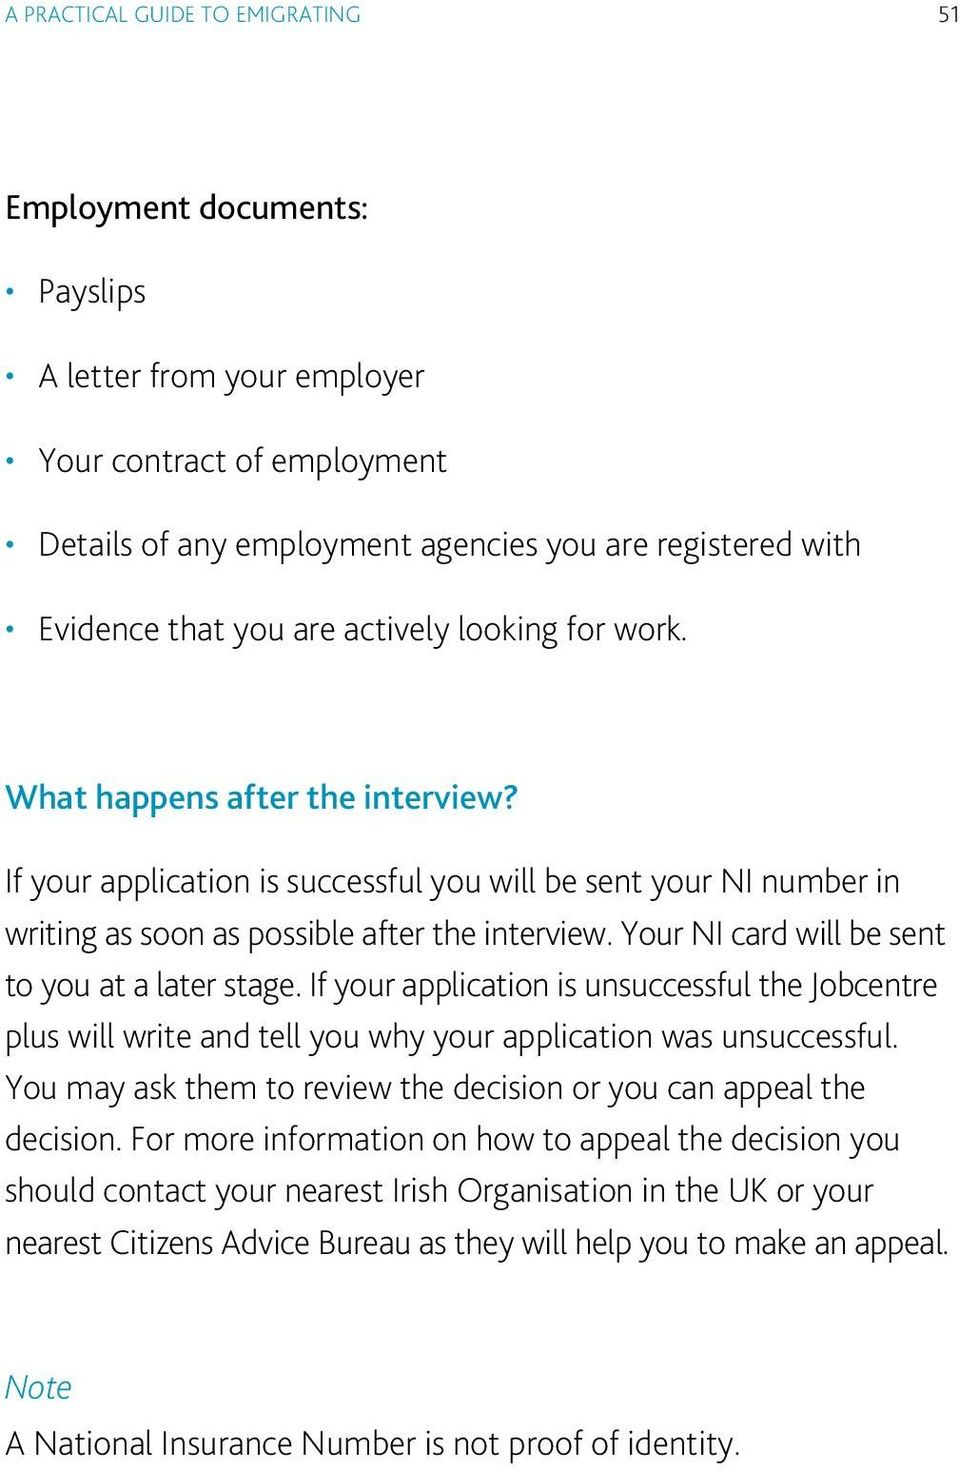 Your NI card will be sent to you at a later stage. If your application is unsuccessful the Jobcentre plus will write and tell you why your application was unsuccessful.